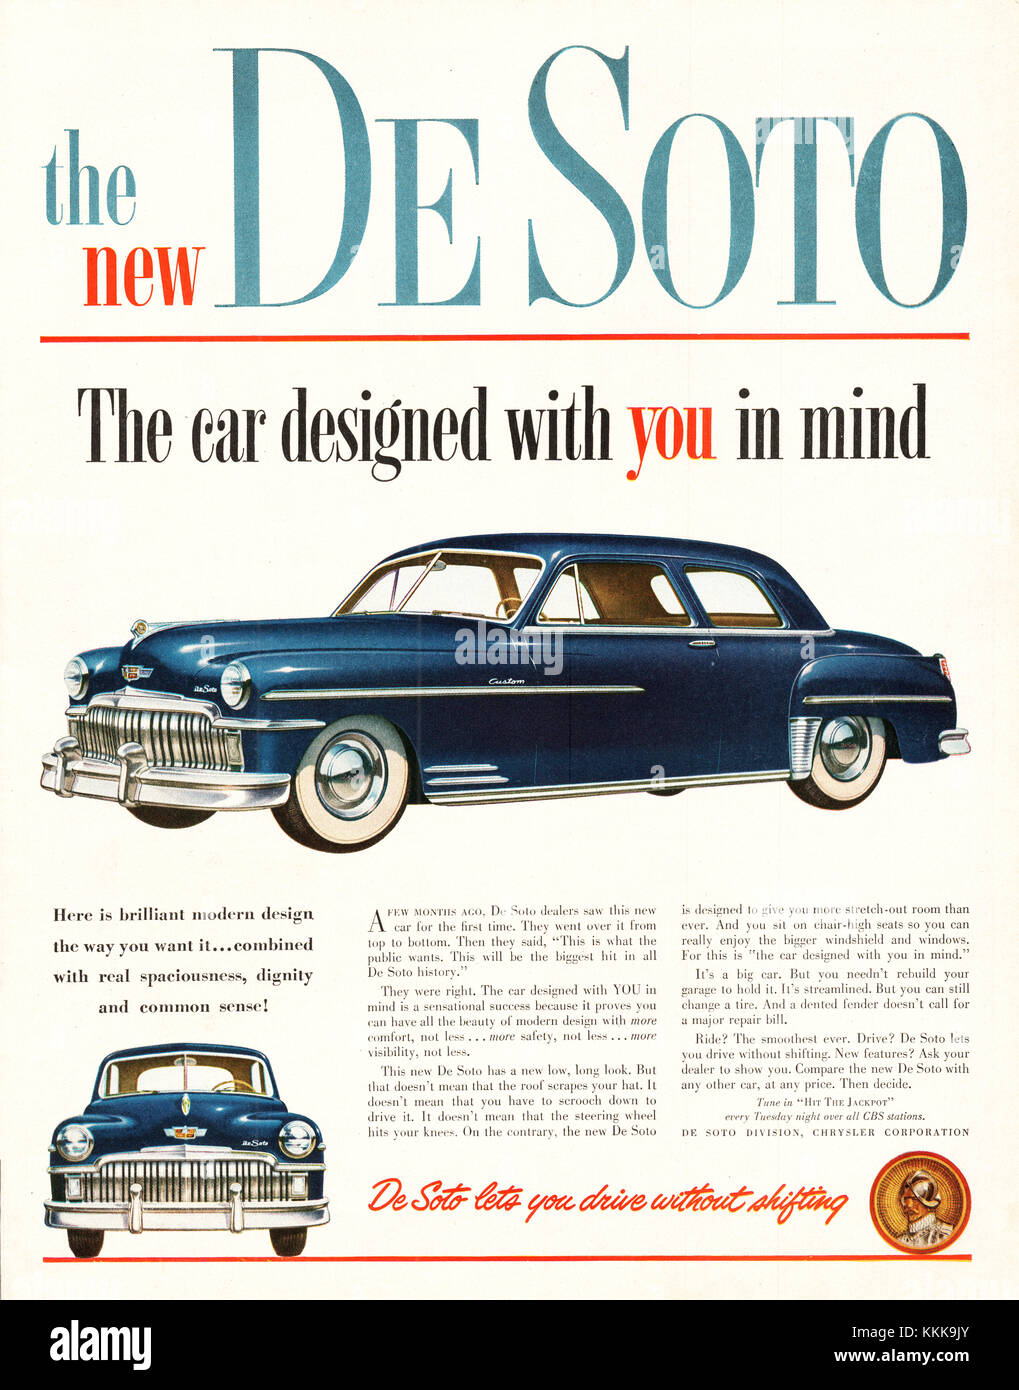 1949 U.S. Magazine Ford De Soto Car Advert Stock Photo, Royalty ...